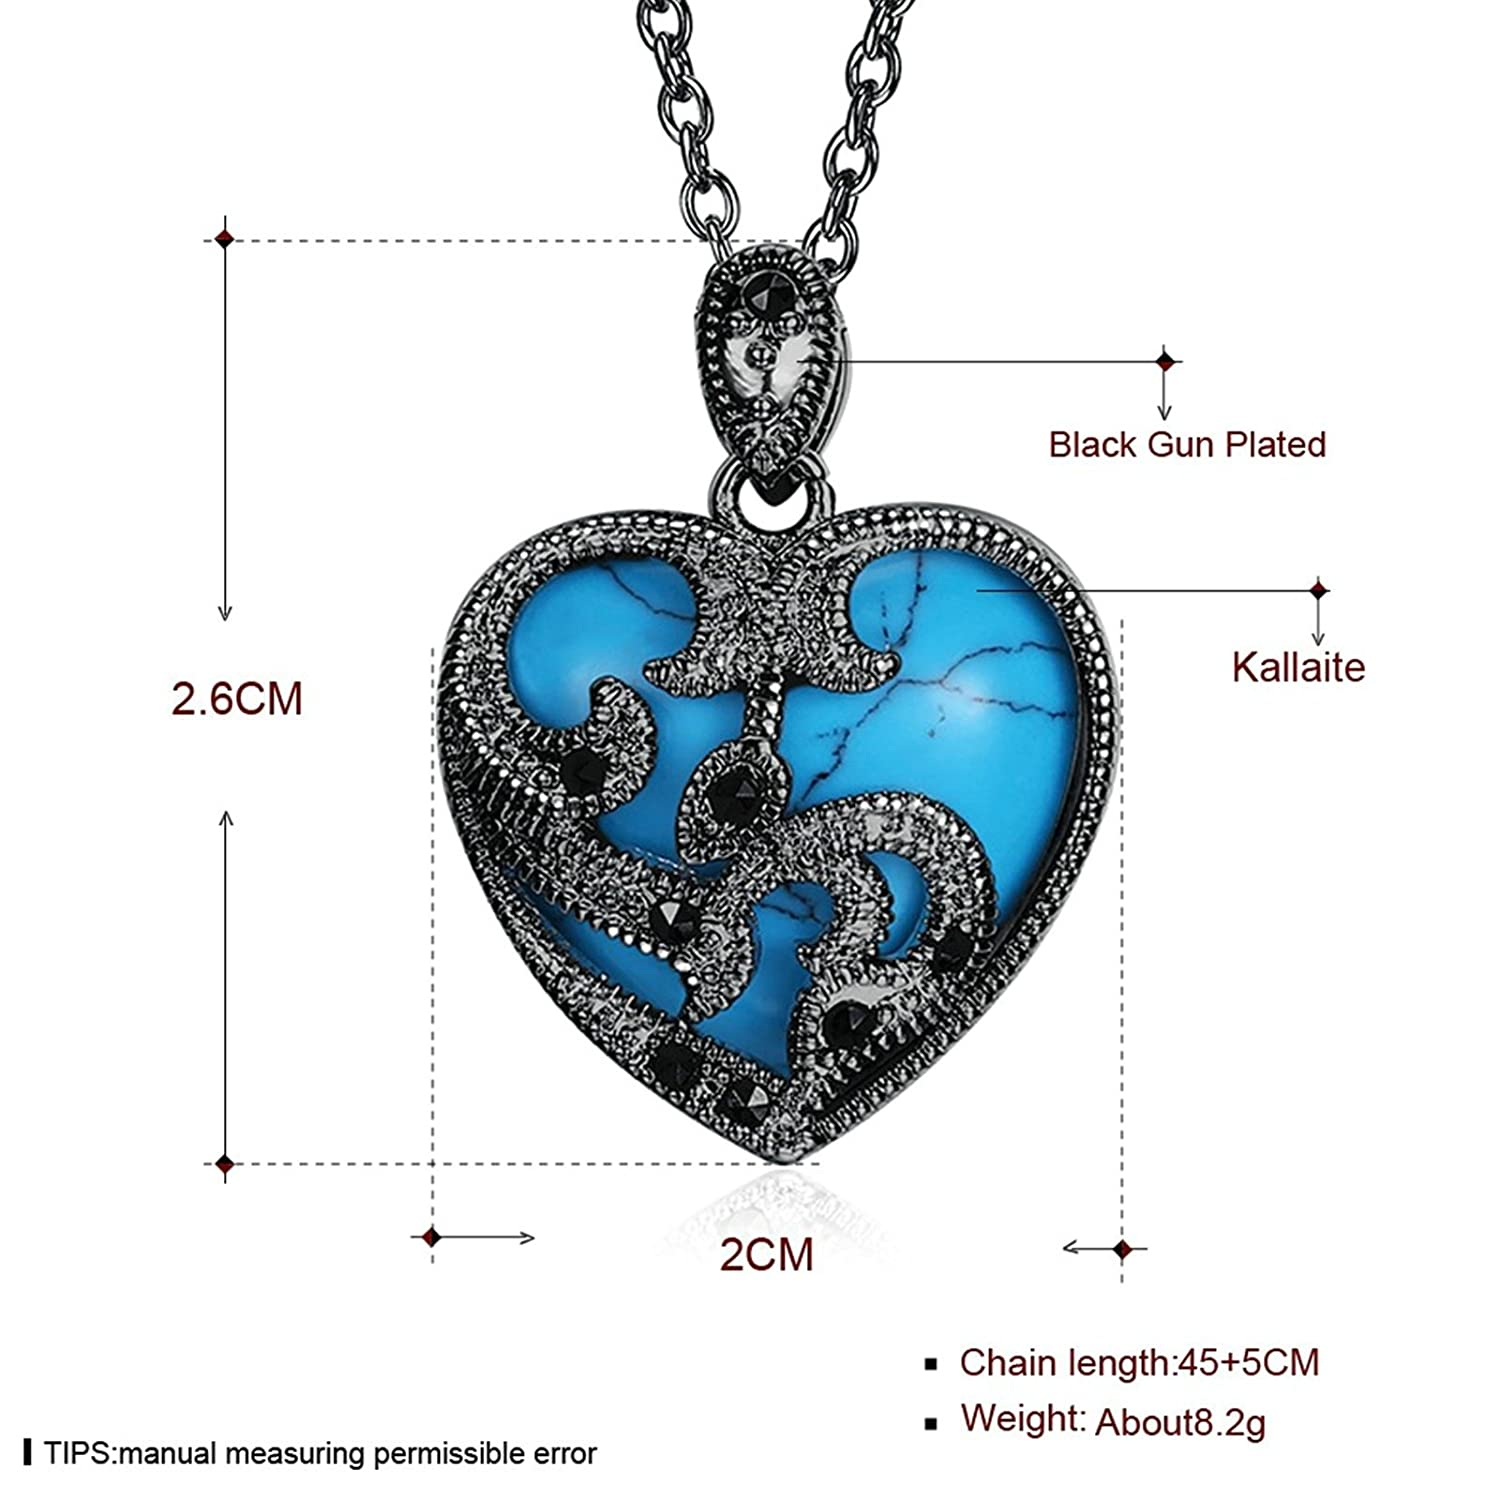 45+5CM KnSam Necklace for Women Heart Hollow Turquoise Chain Length